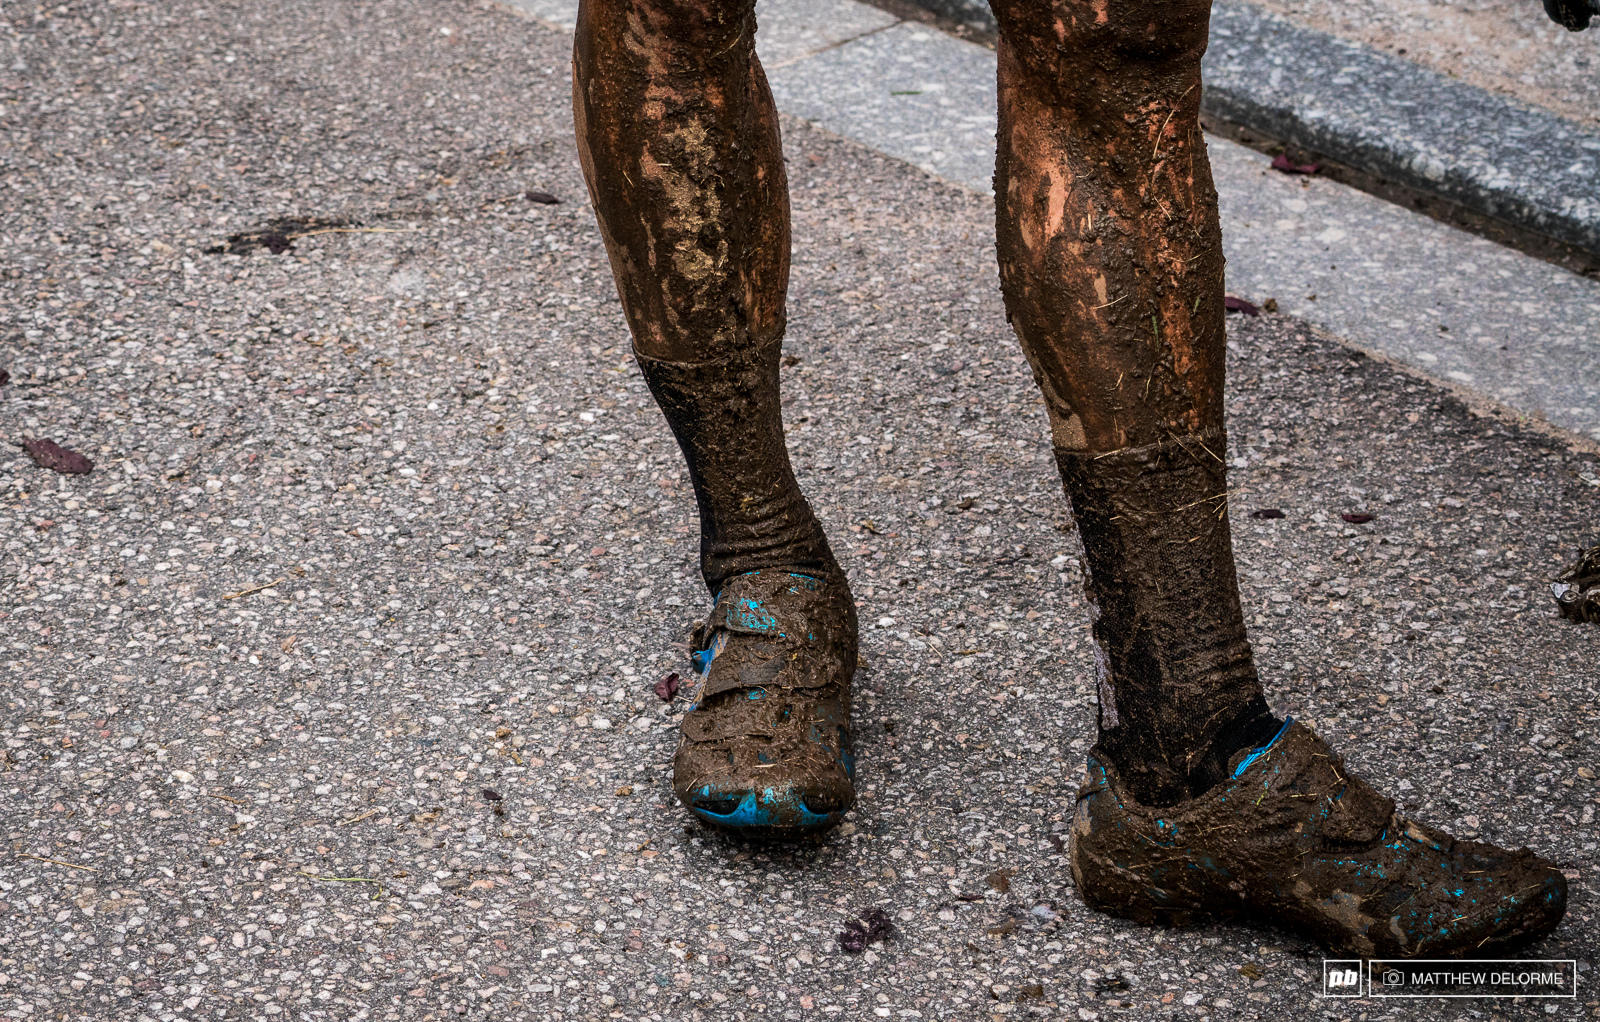 All the legs tat crosses the line had a solid mud coating.